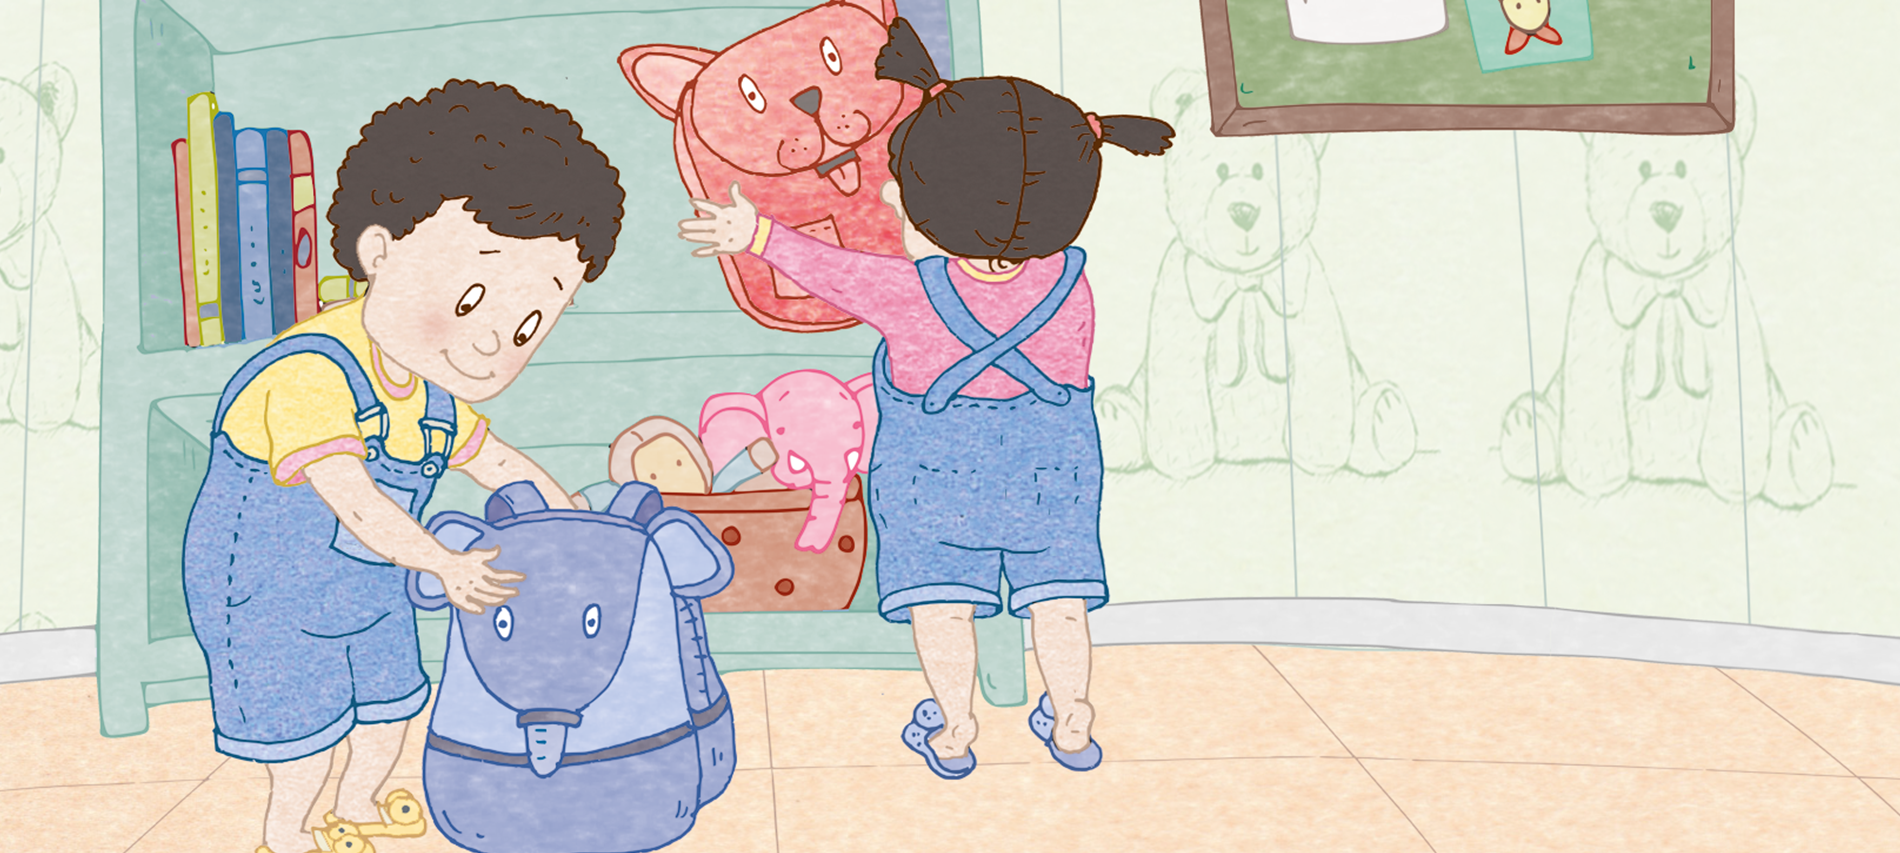 Oh No! There's Just One Tub of Popcorn for Nicky and Noni!: 'Sharing is Cool' — An Excerpt